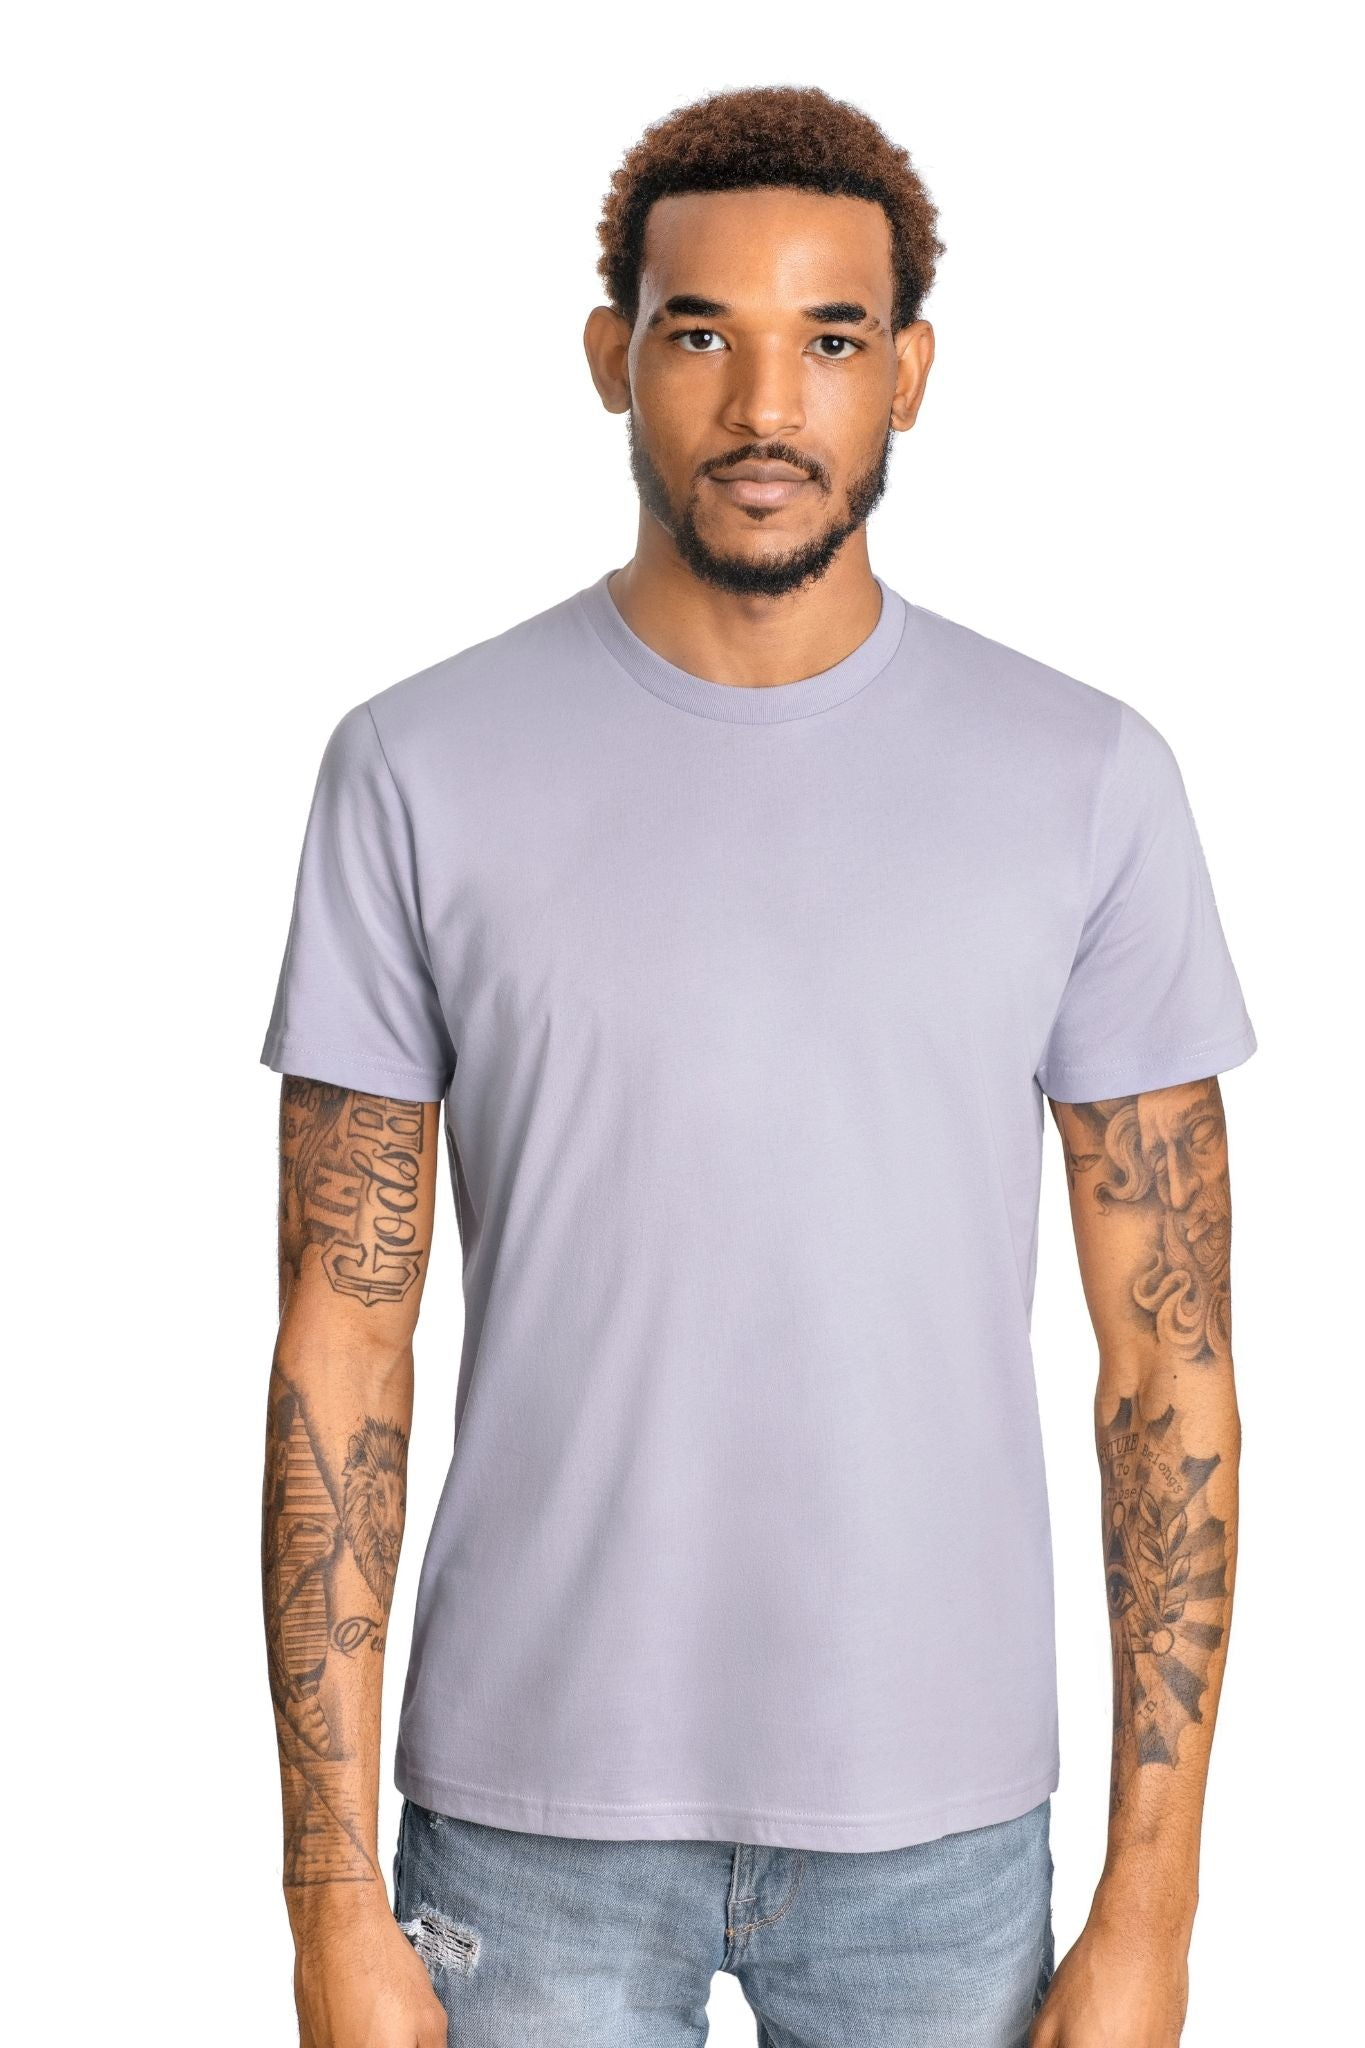 GOLD COTTON Unisex Organic Short Sleeve Tee in Dusk